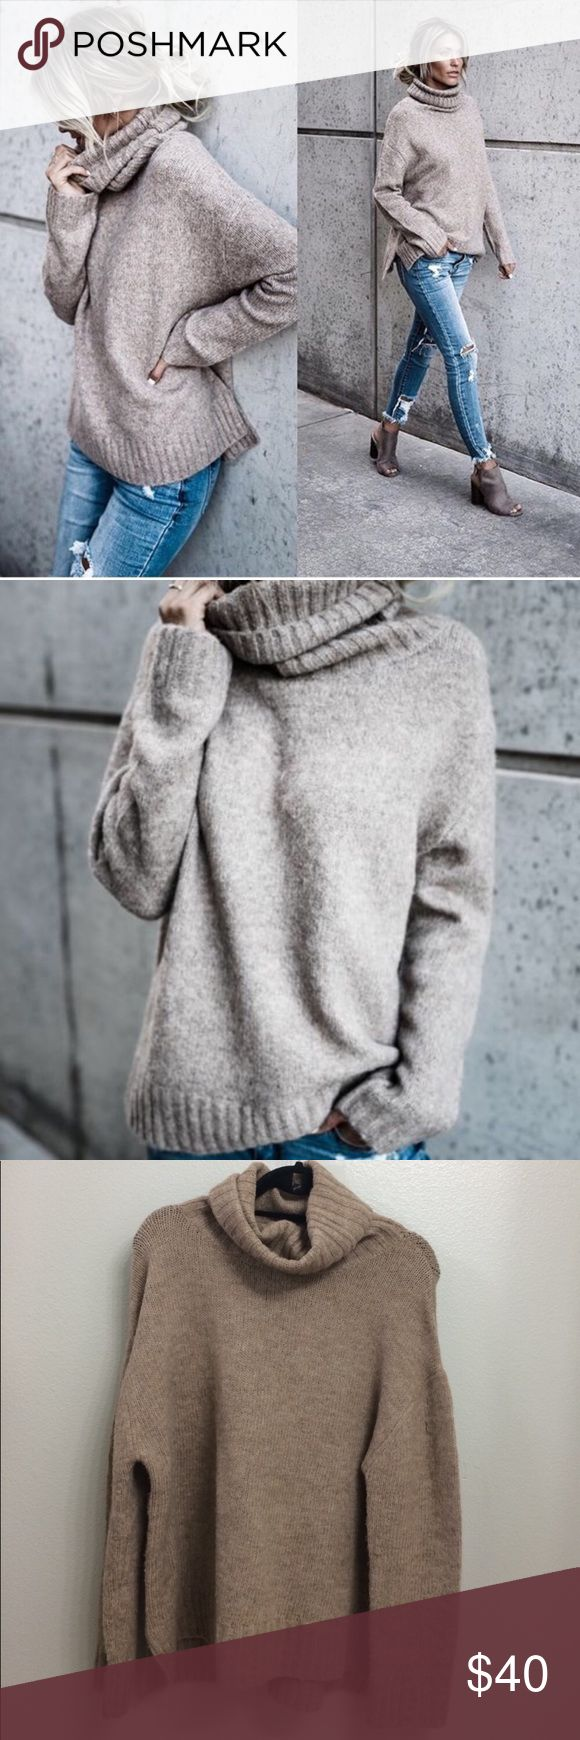 VICI Henry sweater in Oatmeal Small Soft turtleneck tried ...